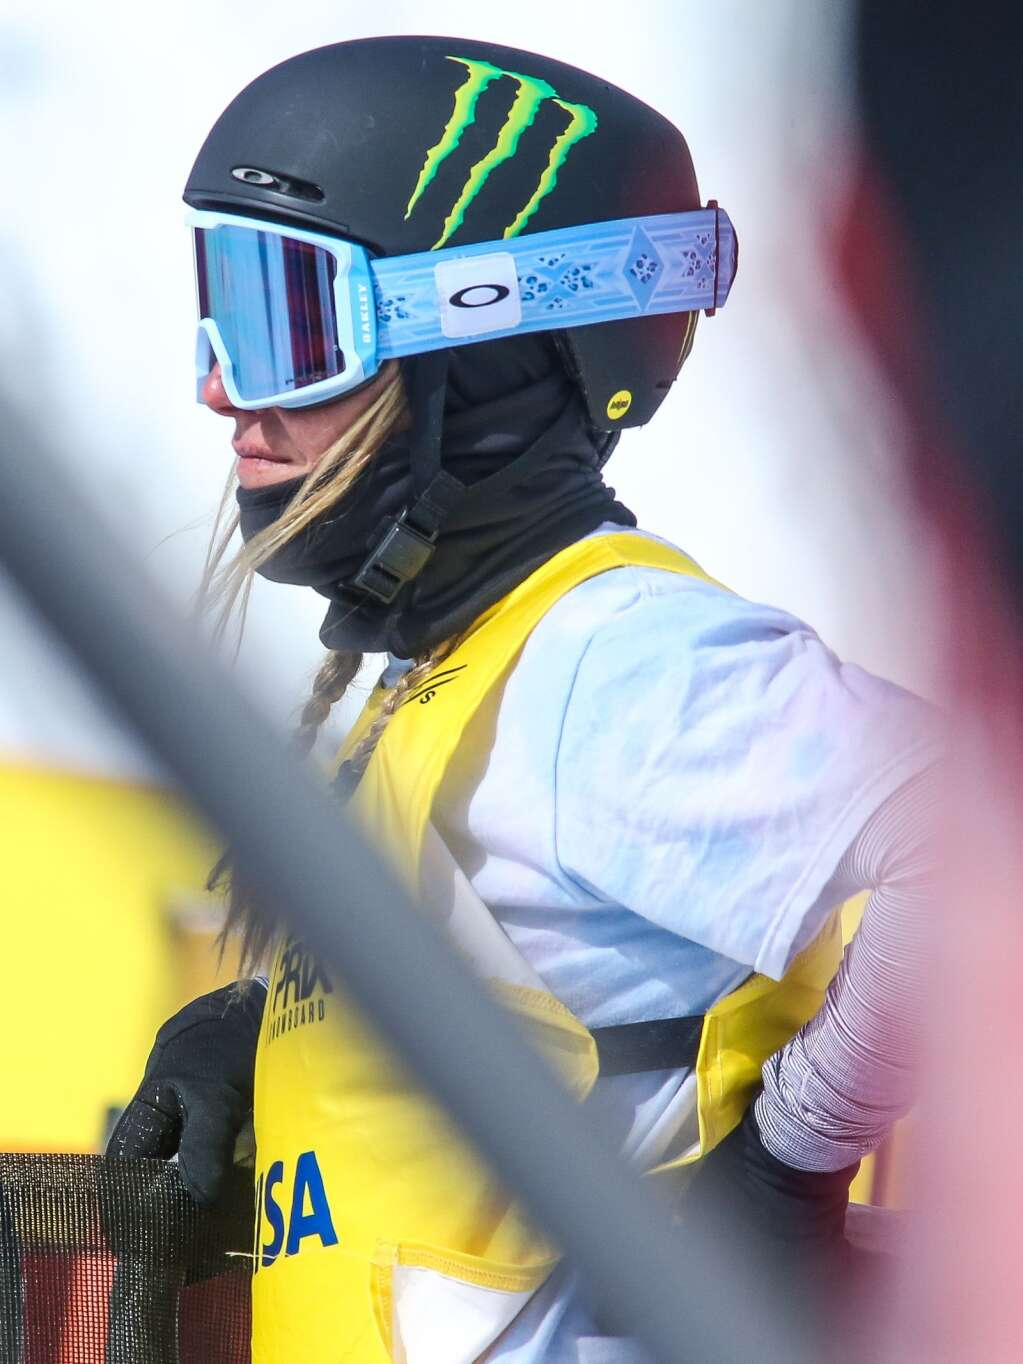 Tahoe's Jamie Anderson watches the women's snowboard slopestyle contest of the U.S. Grand Prix and World Cup on Saturday, March 20, 2021, at Buttermilk Ski Area in Aspen. Photo by Austin Colbert/The Aspen Times.